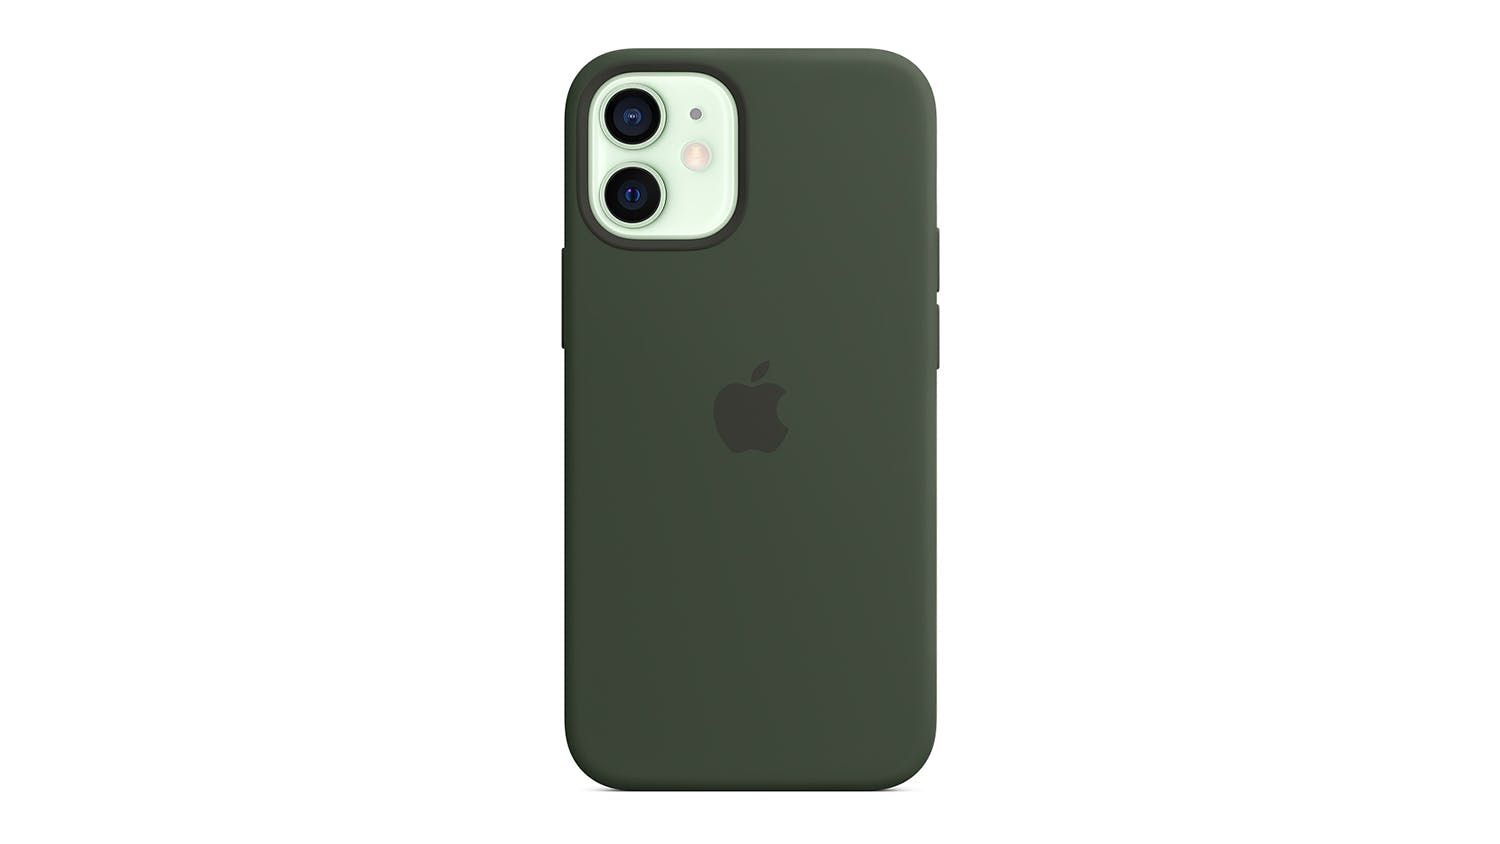 Apple Silicone Case with MagSafe for iPhone 12 mini - Cypress Green